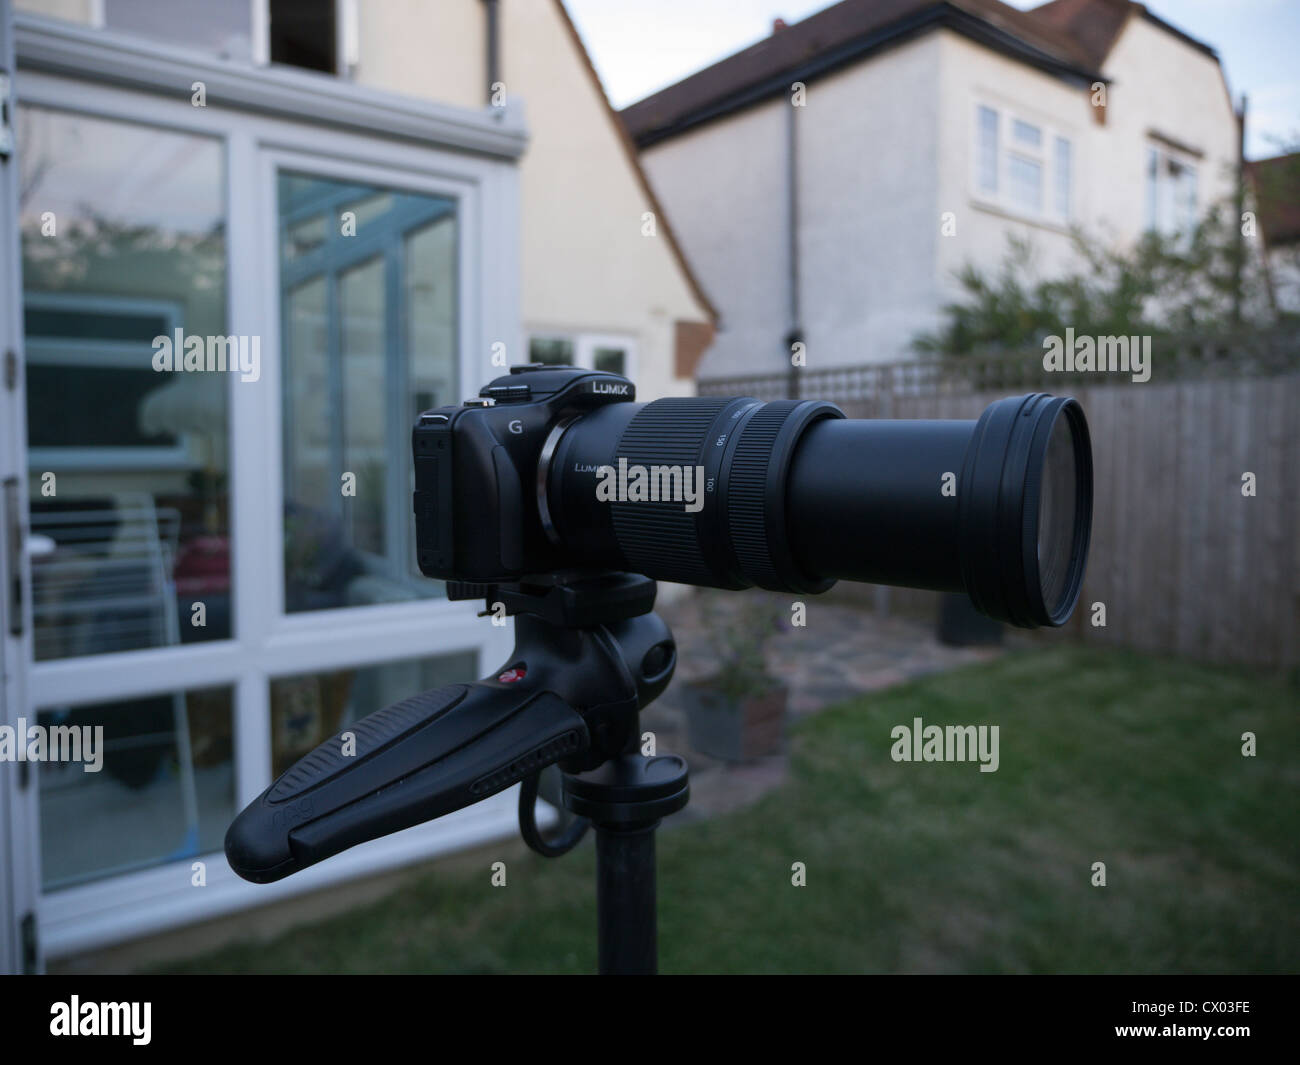 A Panasonic camera with telephoto zoom lens on a tripod in a garden. - Stock Image